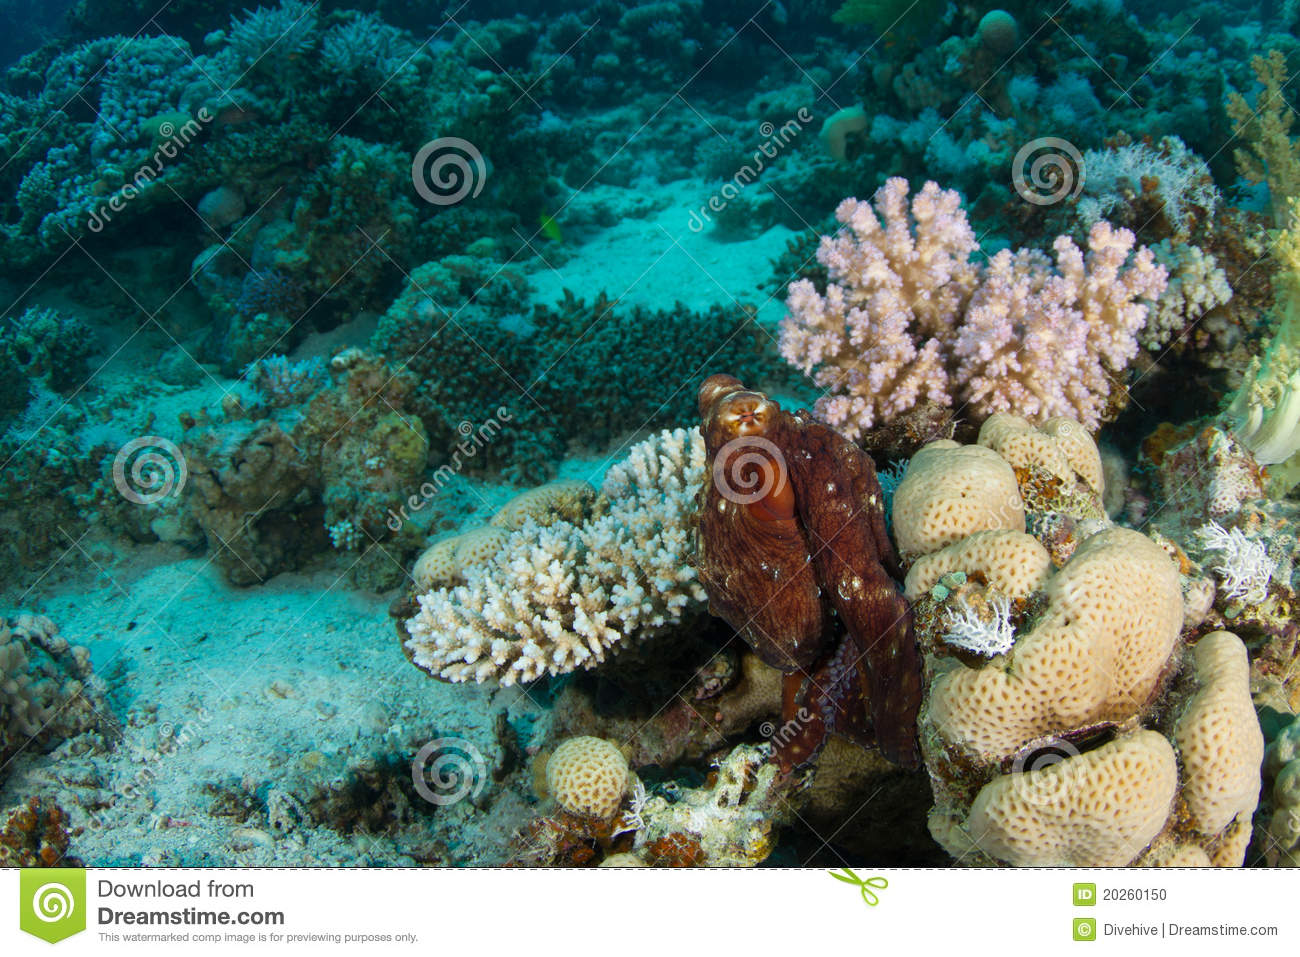 Octopus In Coral Reef Stock Photo - Image: 20260150